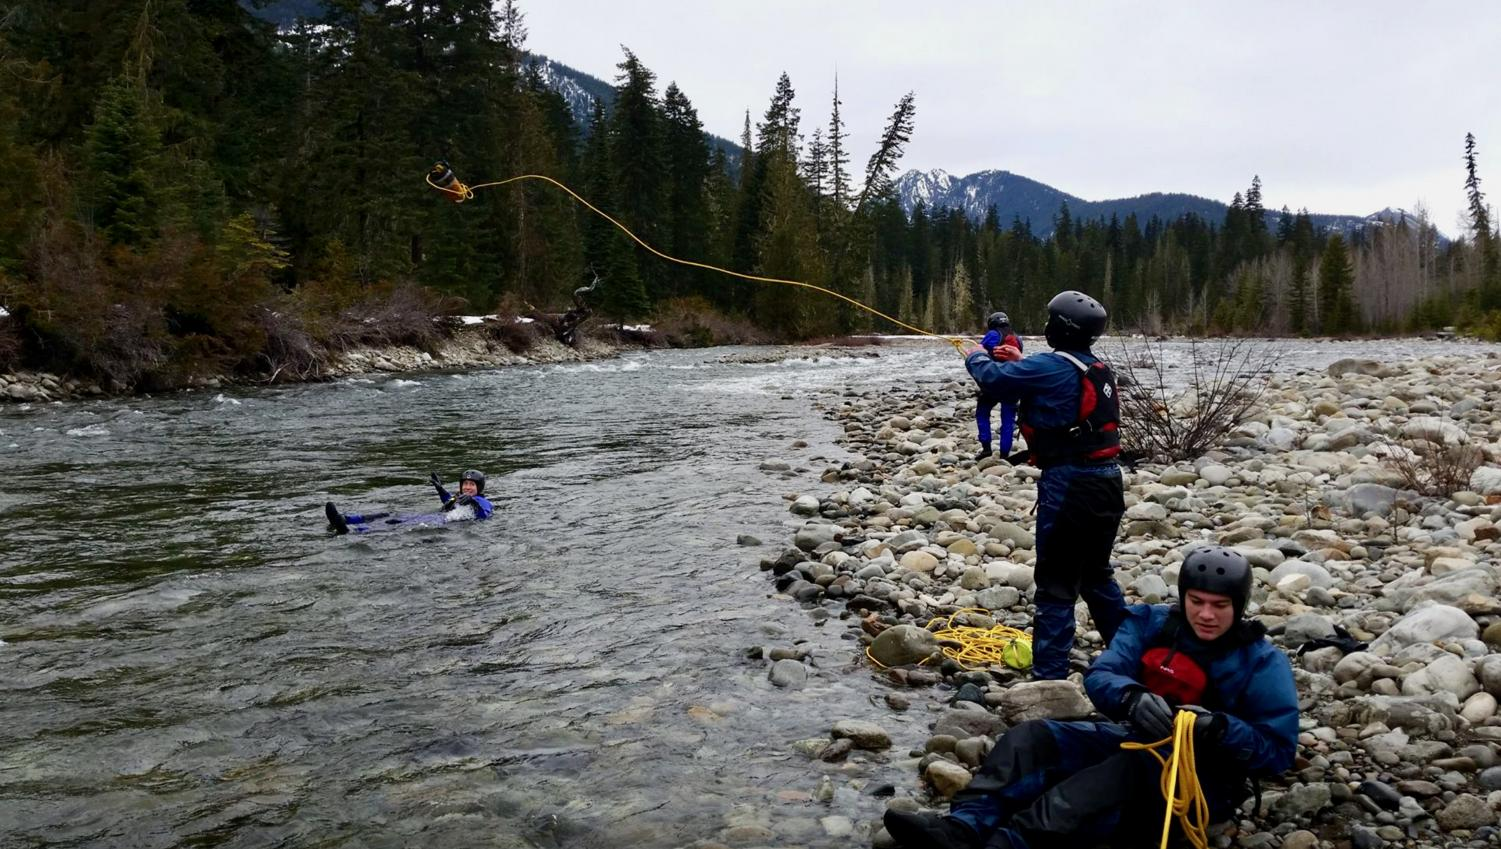 The swift water rescue course teaches various knots, pulley systems and craft-recovery techniques. Trainees also learn how to recover, retrieve and transport people who have lost control in the river. Gear is provided by OPR.